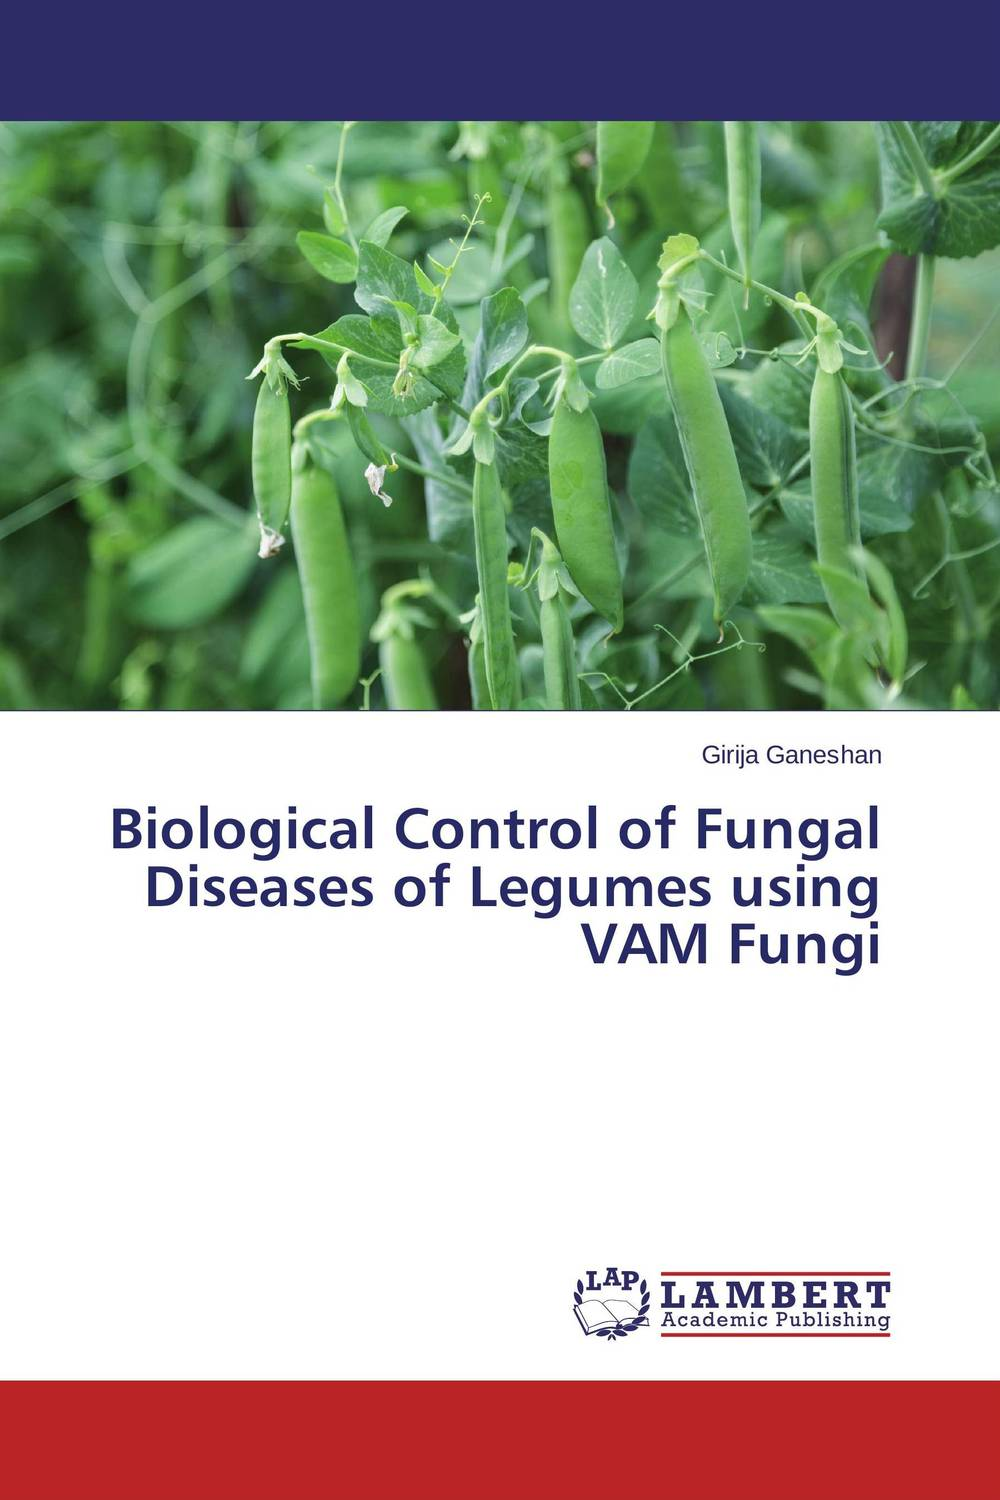 Biological Control of Fungal Diseases of Legumes using VAM Fungi h n gour pankaj sharma and rakesh kaushal pathological aspects and management of root rot of groundnut